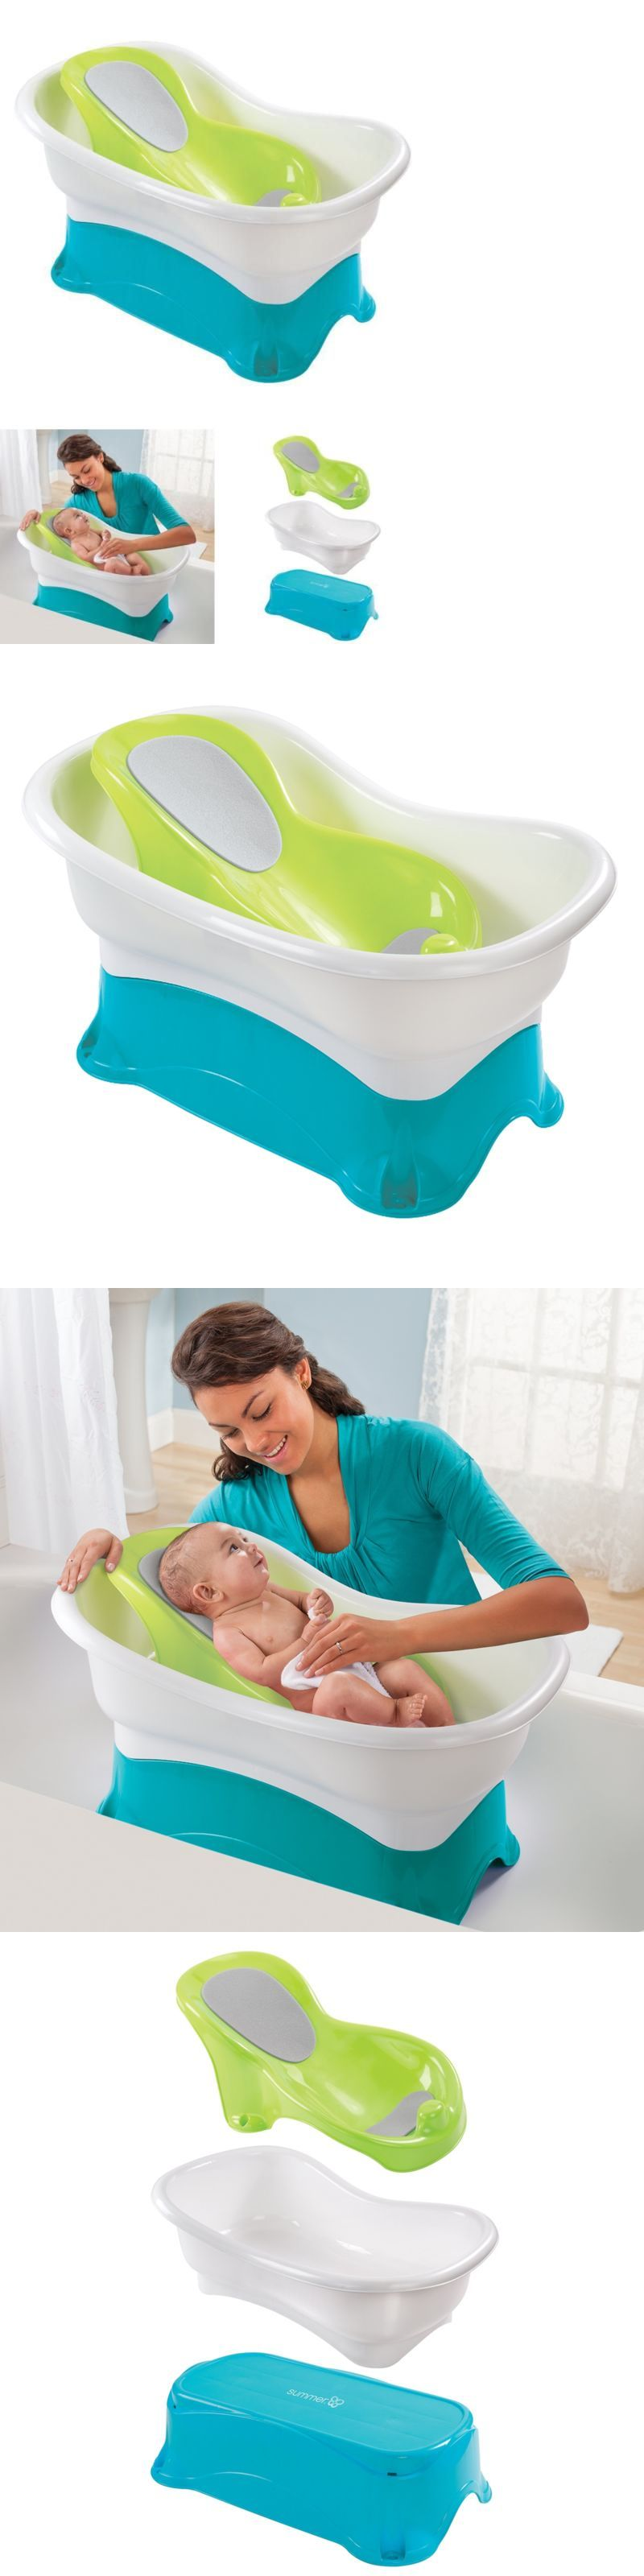 Bath Tubs 113814: Infant Comfort Height Bath Tub -> BUY IT NOW ONLY ...